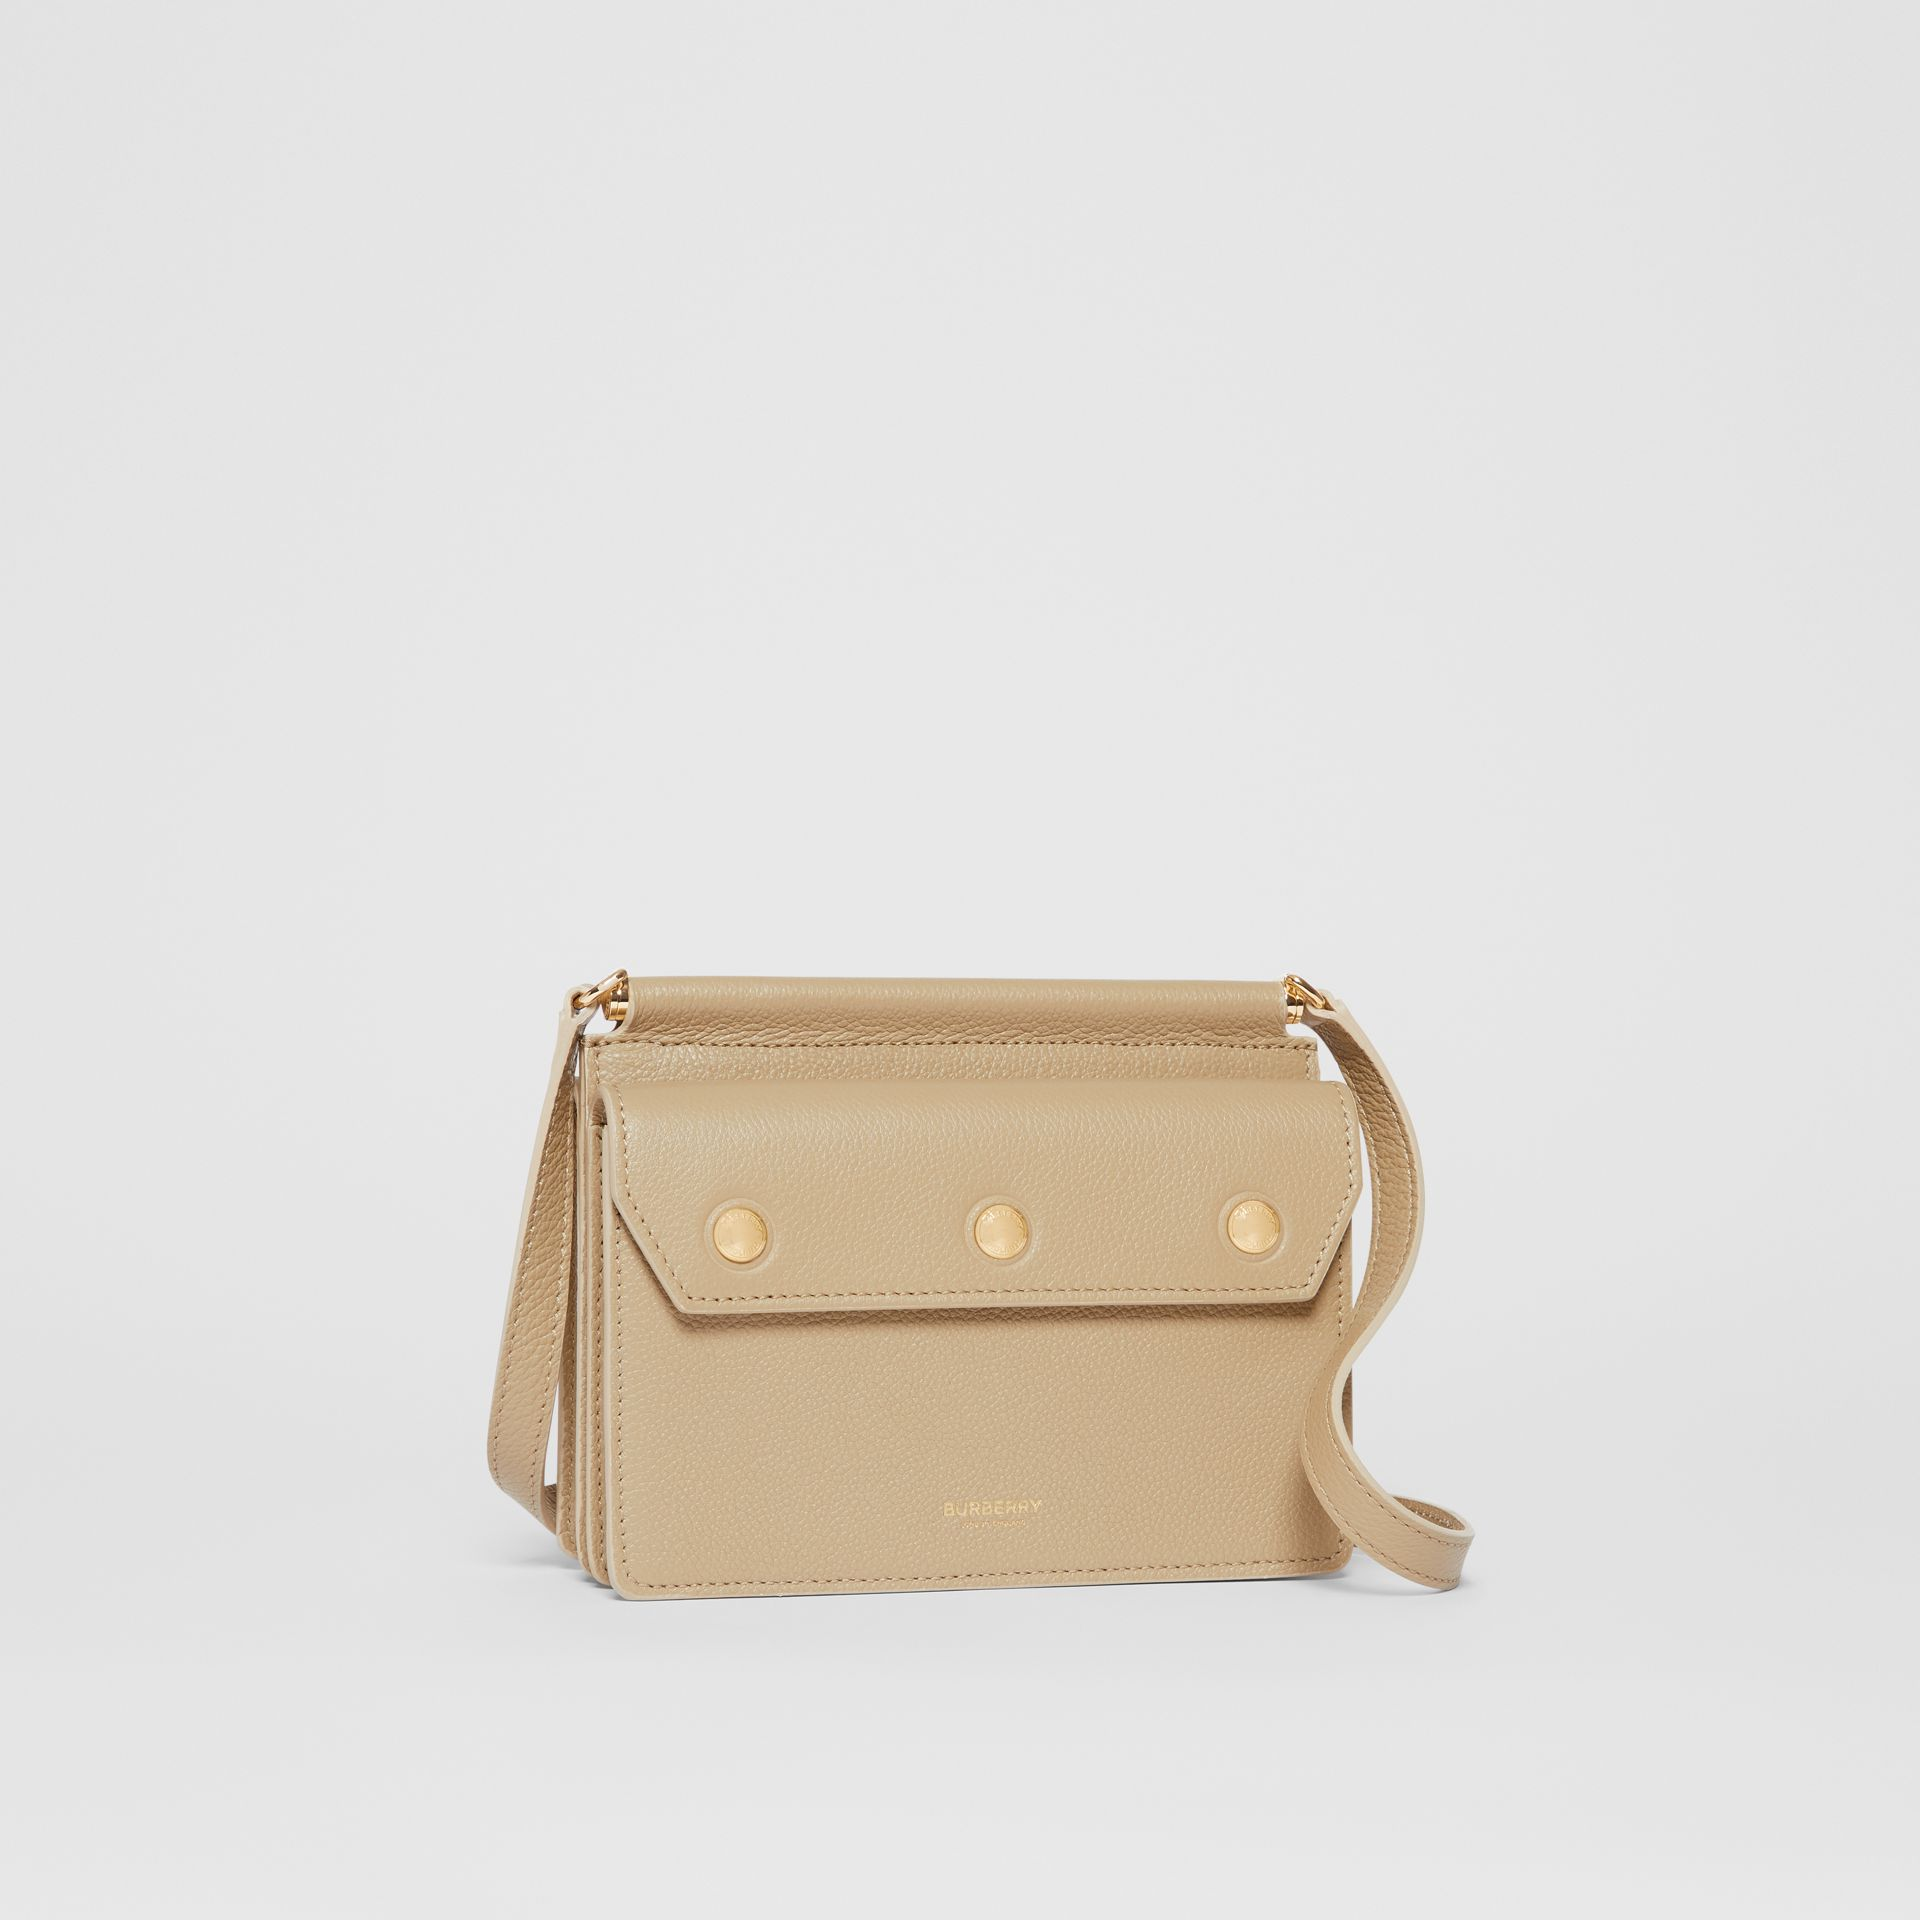 Mini Leather Title Bag in Honey - Women   Burberry United States - gallery image 6